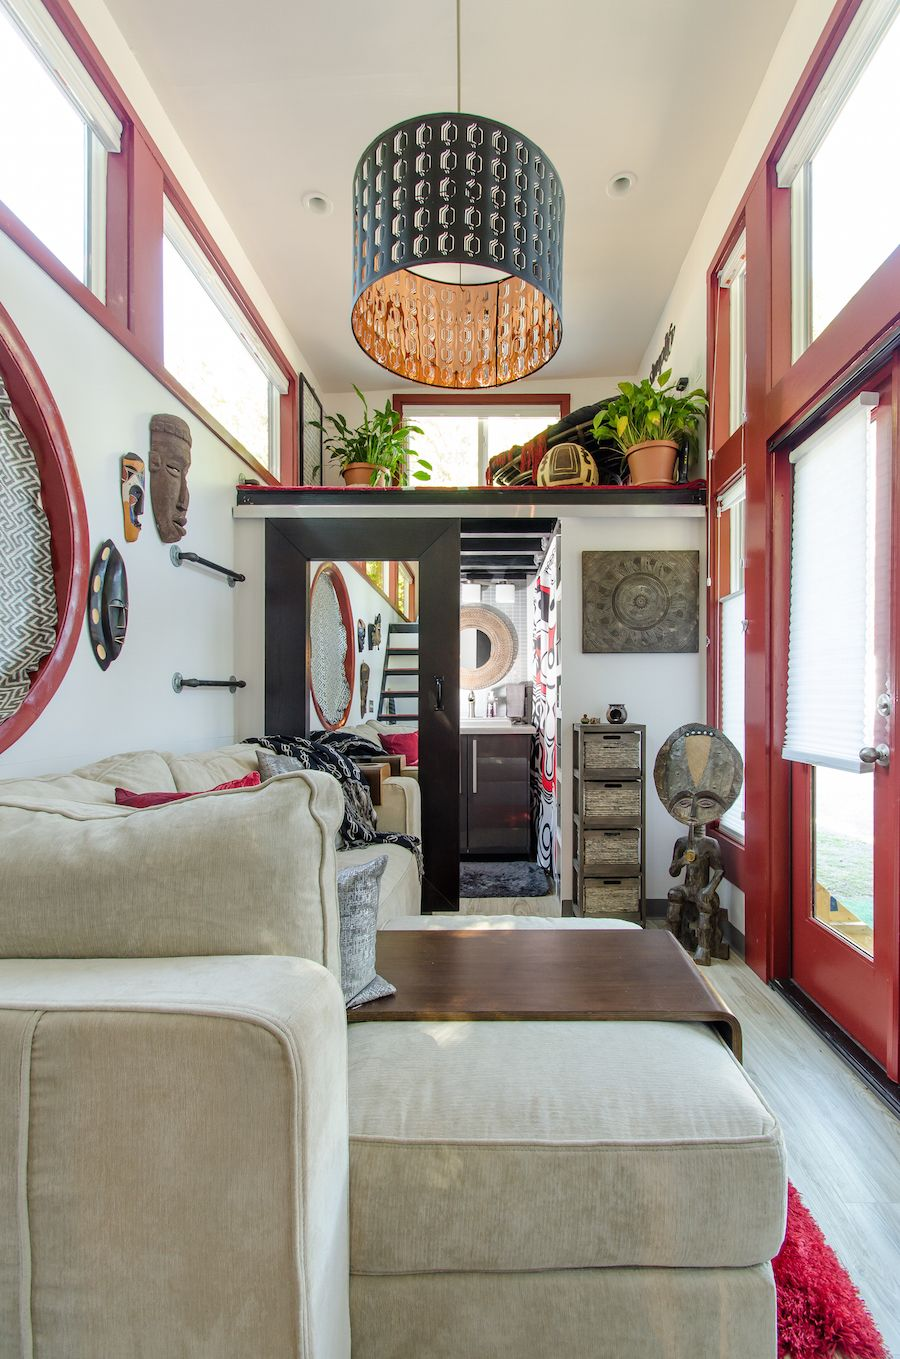 12 tiny homes that prove small spaces are more glam than ever 12 tiny homes that prove small spaces are more glam than ever